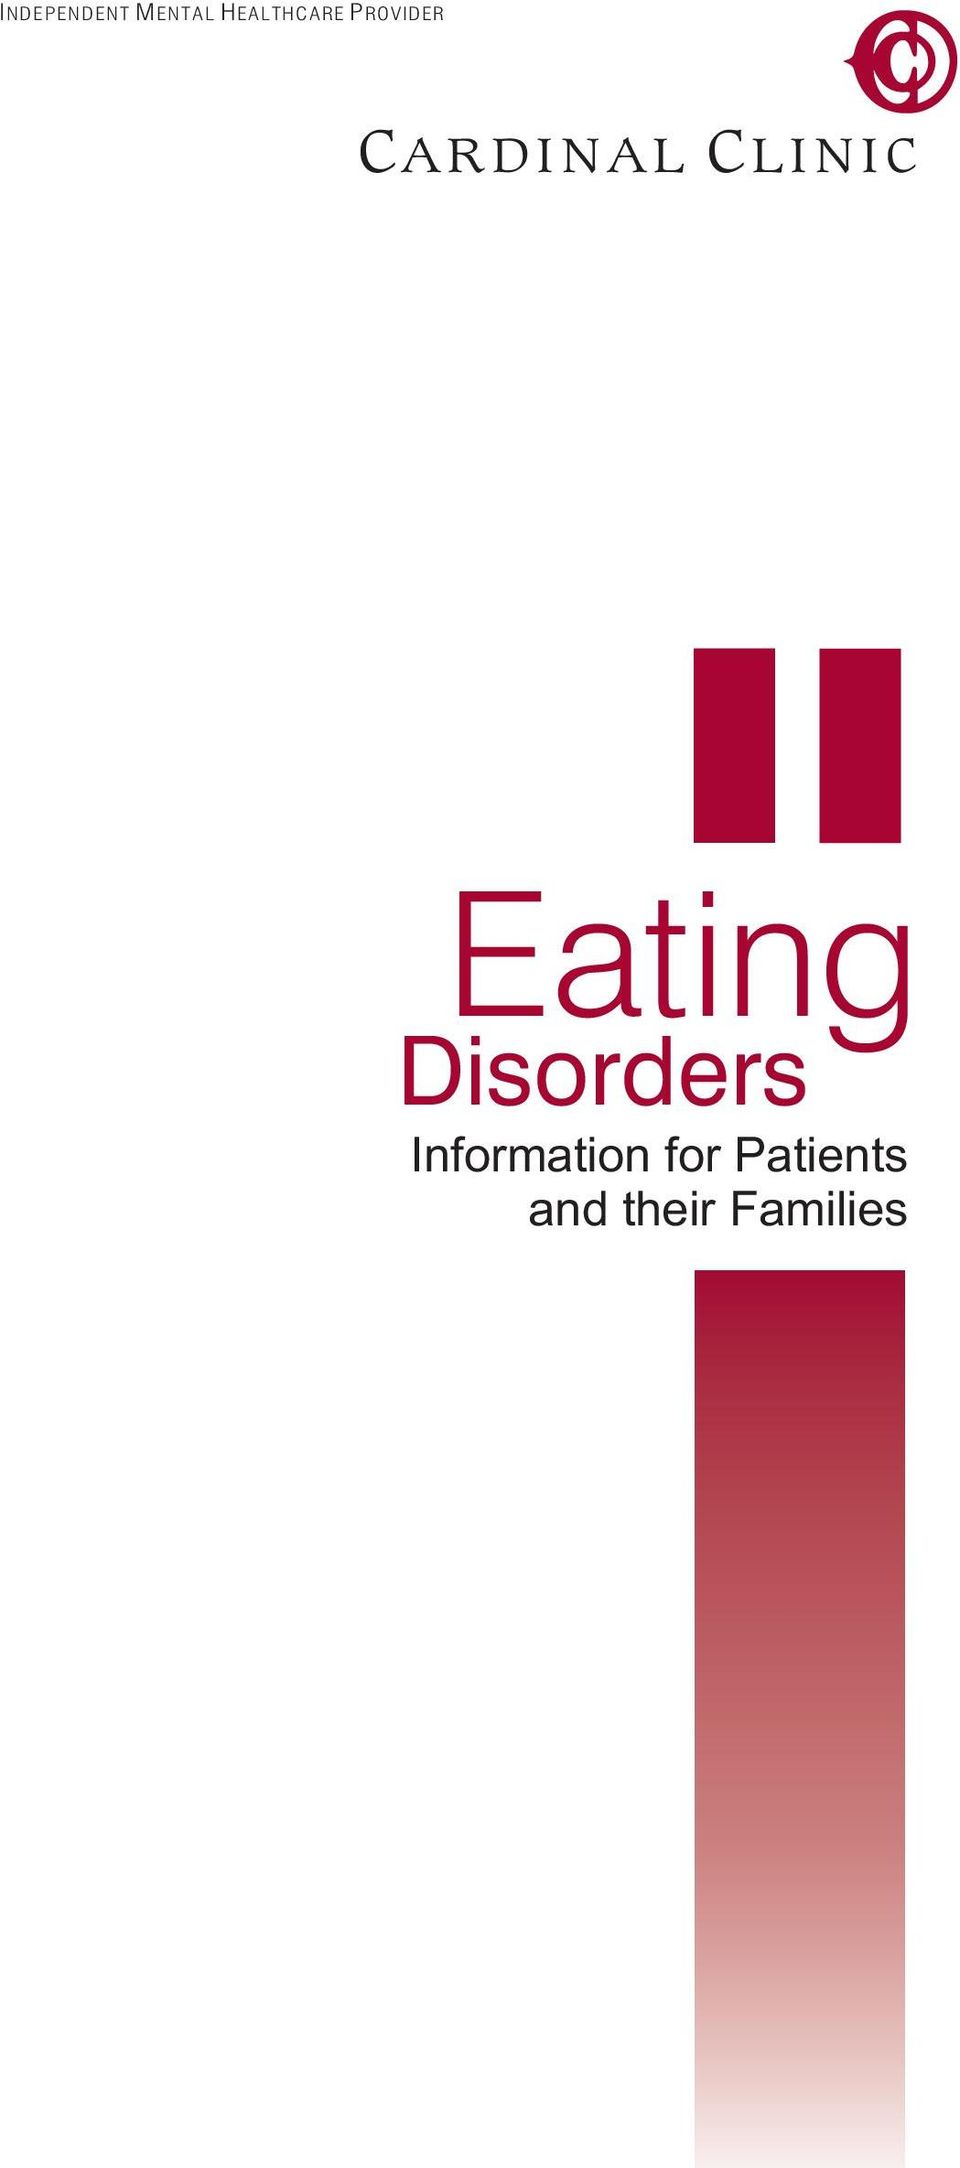 CARDINAL CLINIC Eating Disorders